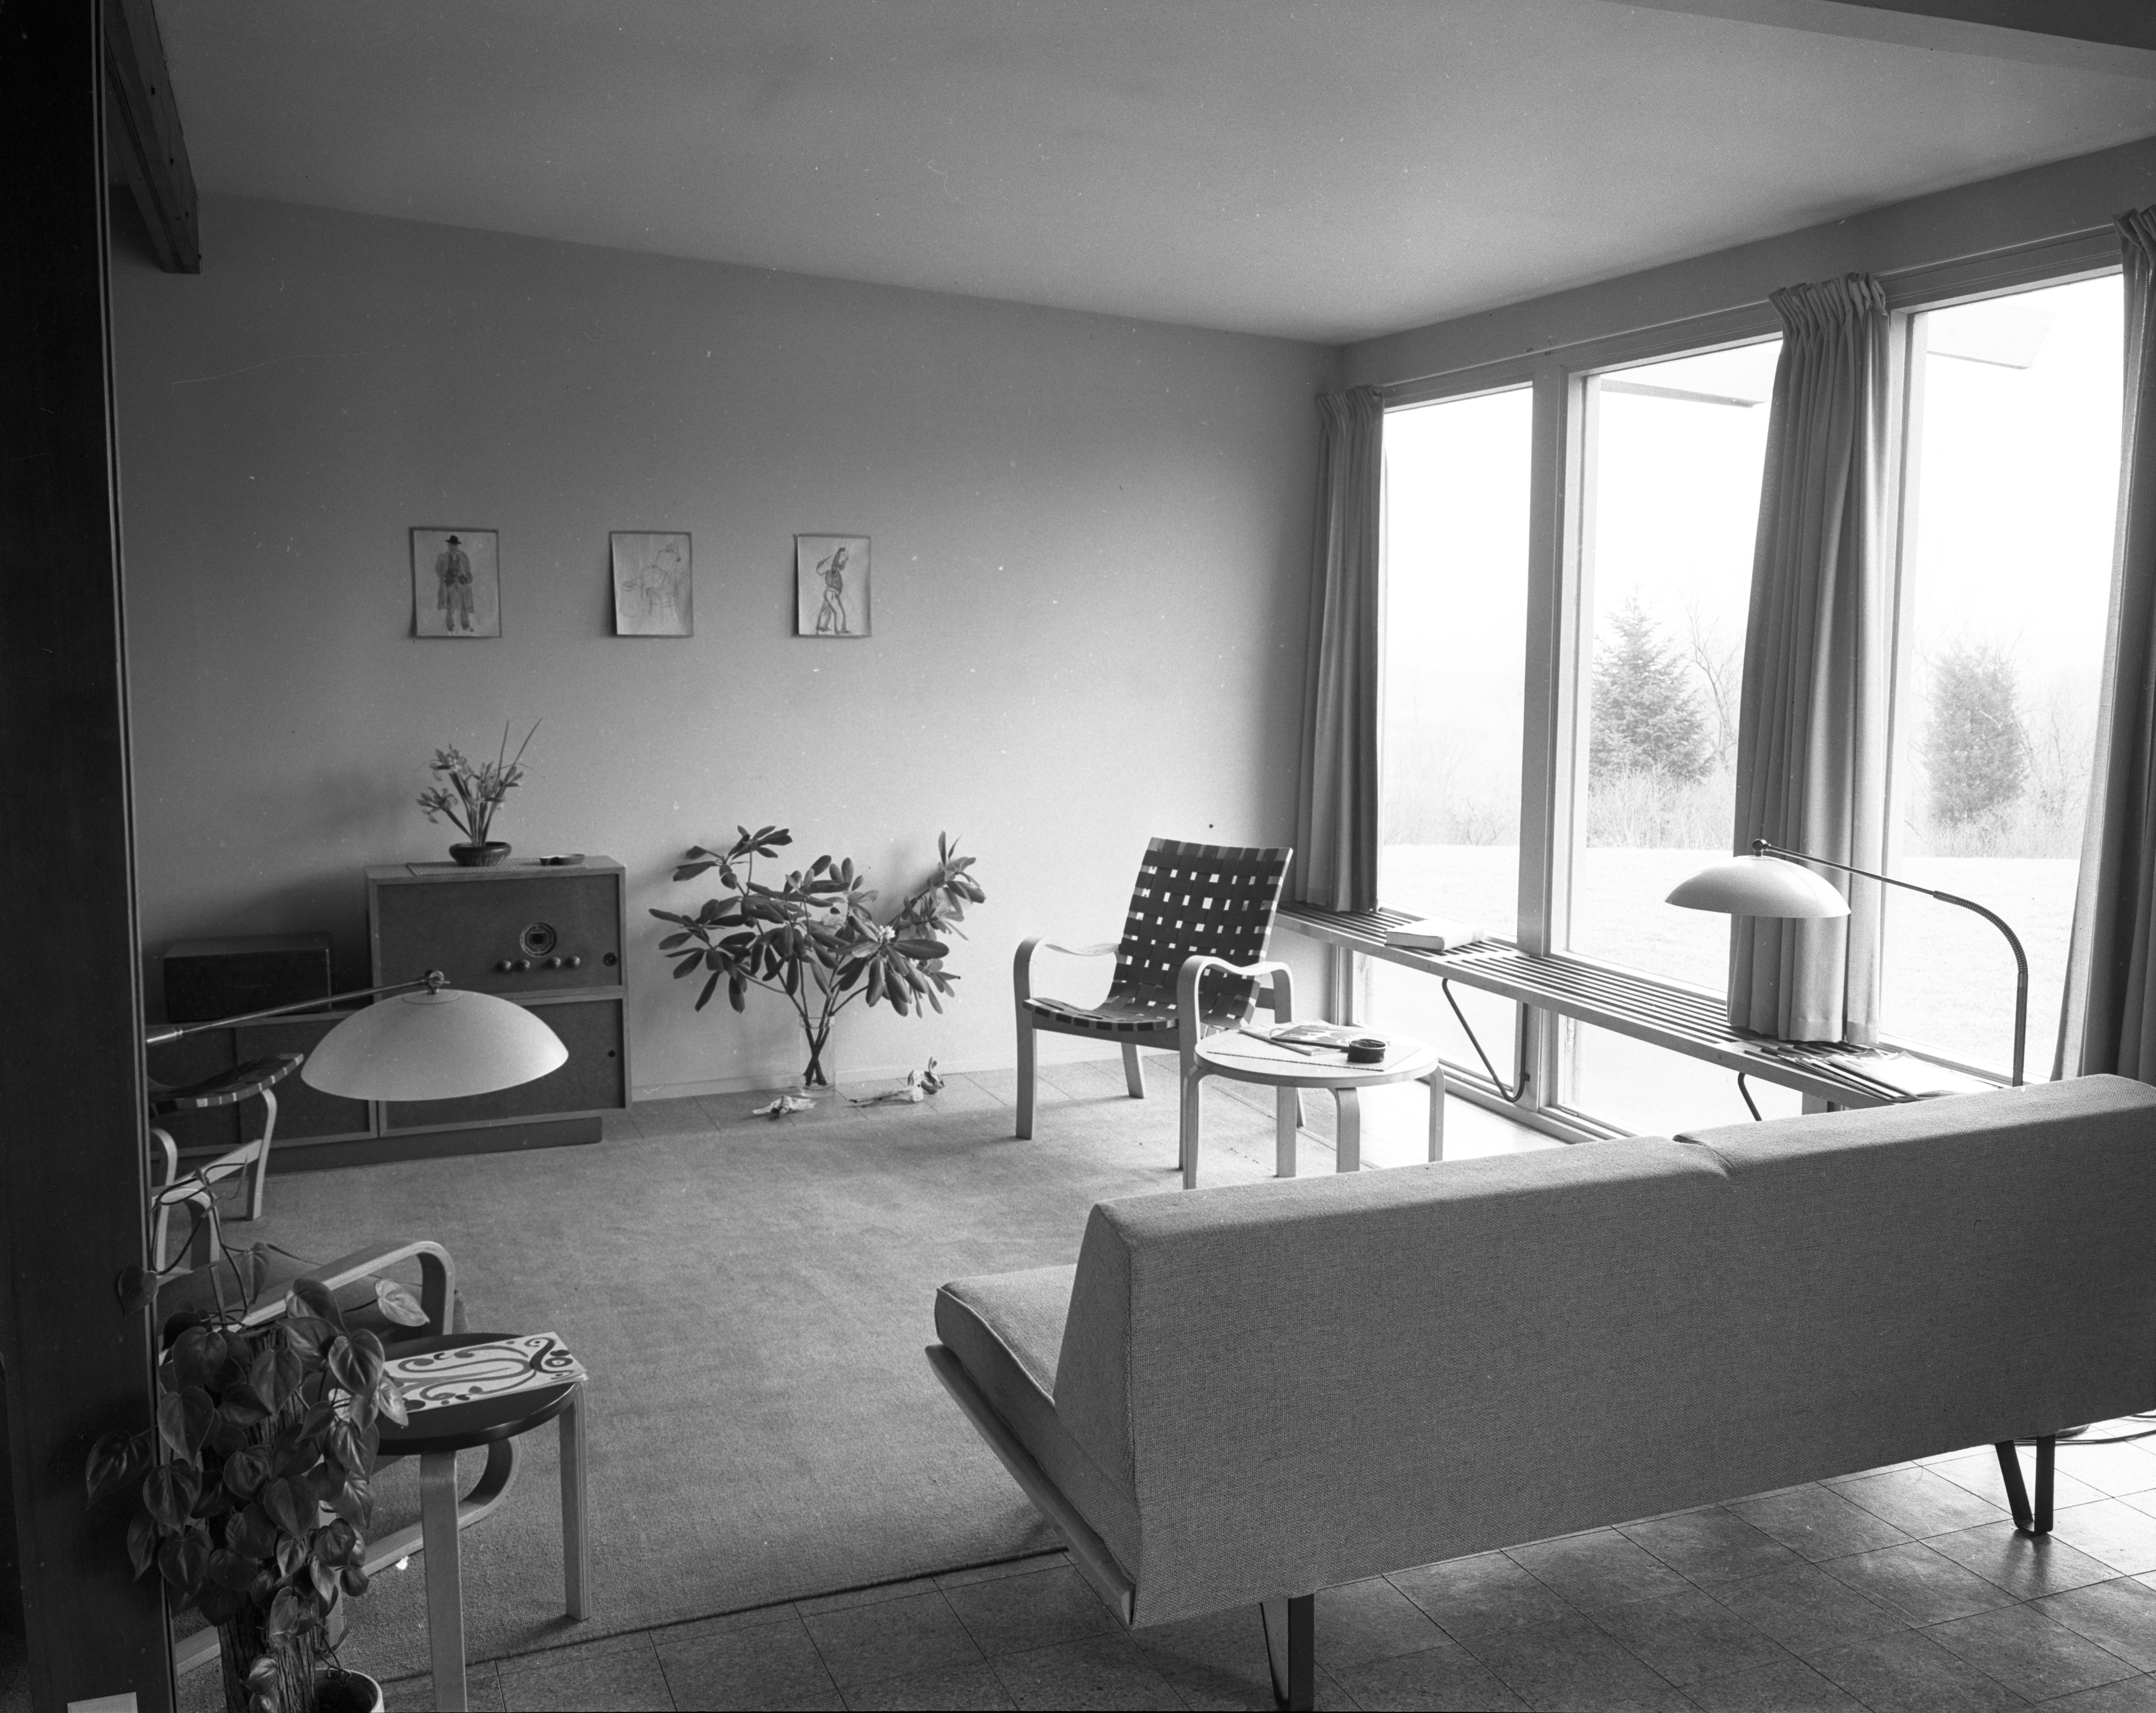 Living Room At Architect Richard M. Robinson Home On Huron View Blvd., 1953 image